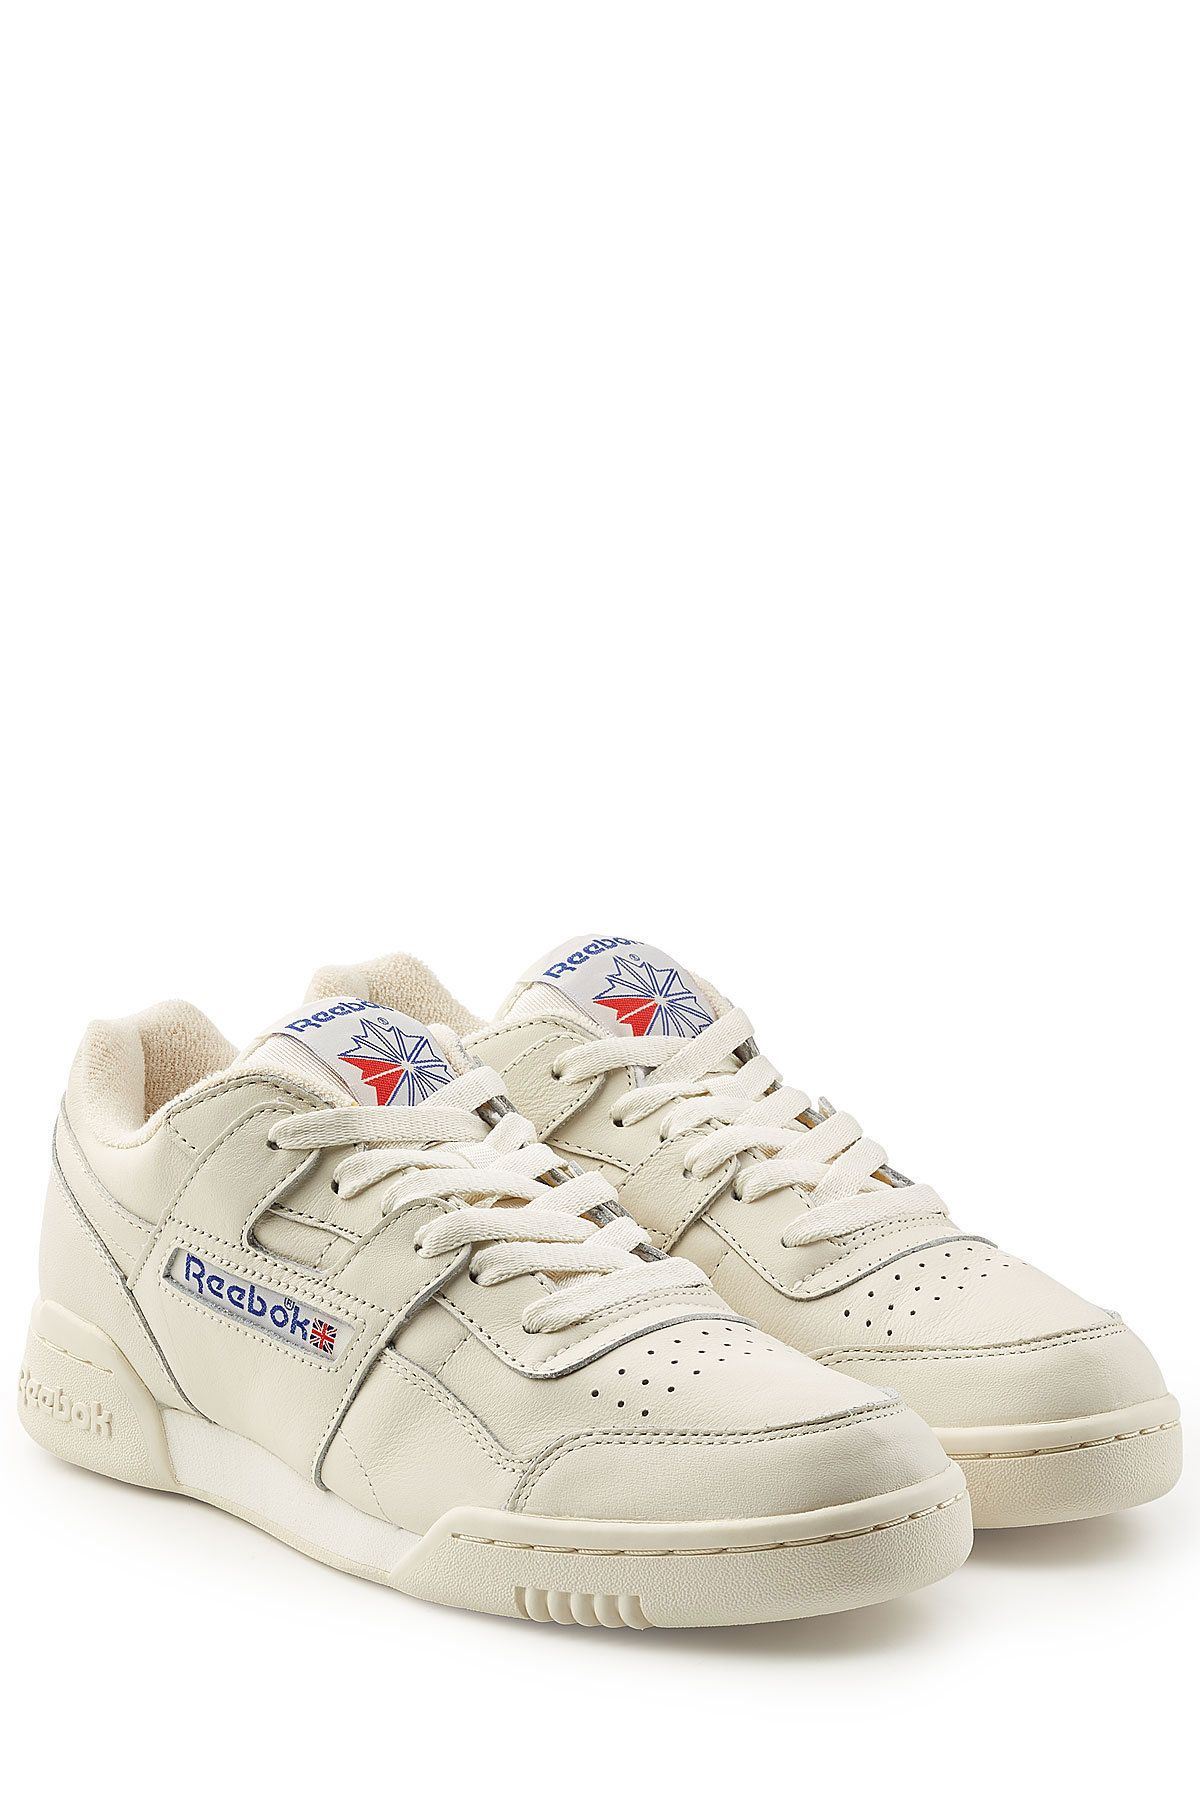 e73c00fea854 Workout Plus Vintage Sneakers - Reebok